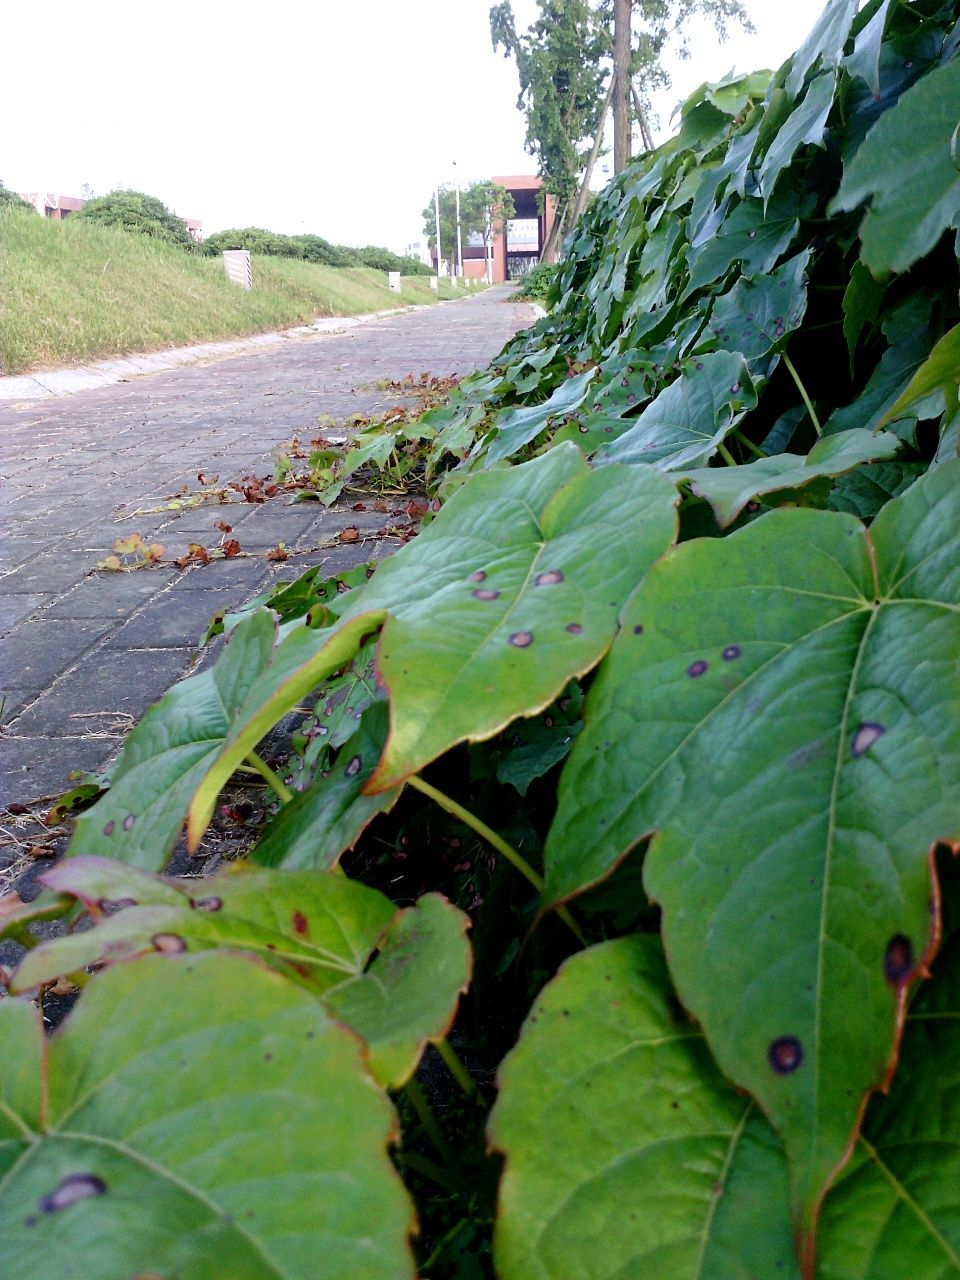 leaf, growth, plant, green color, nature, outdoors, road, day, no people, close-up, freshness